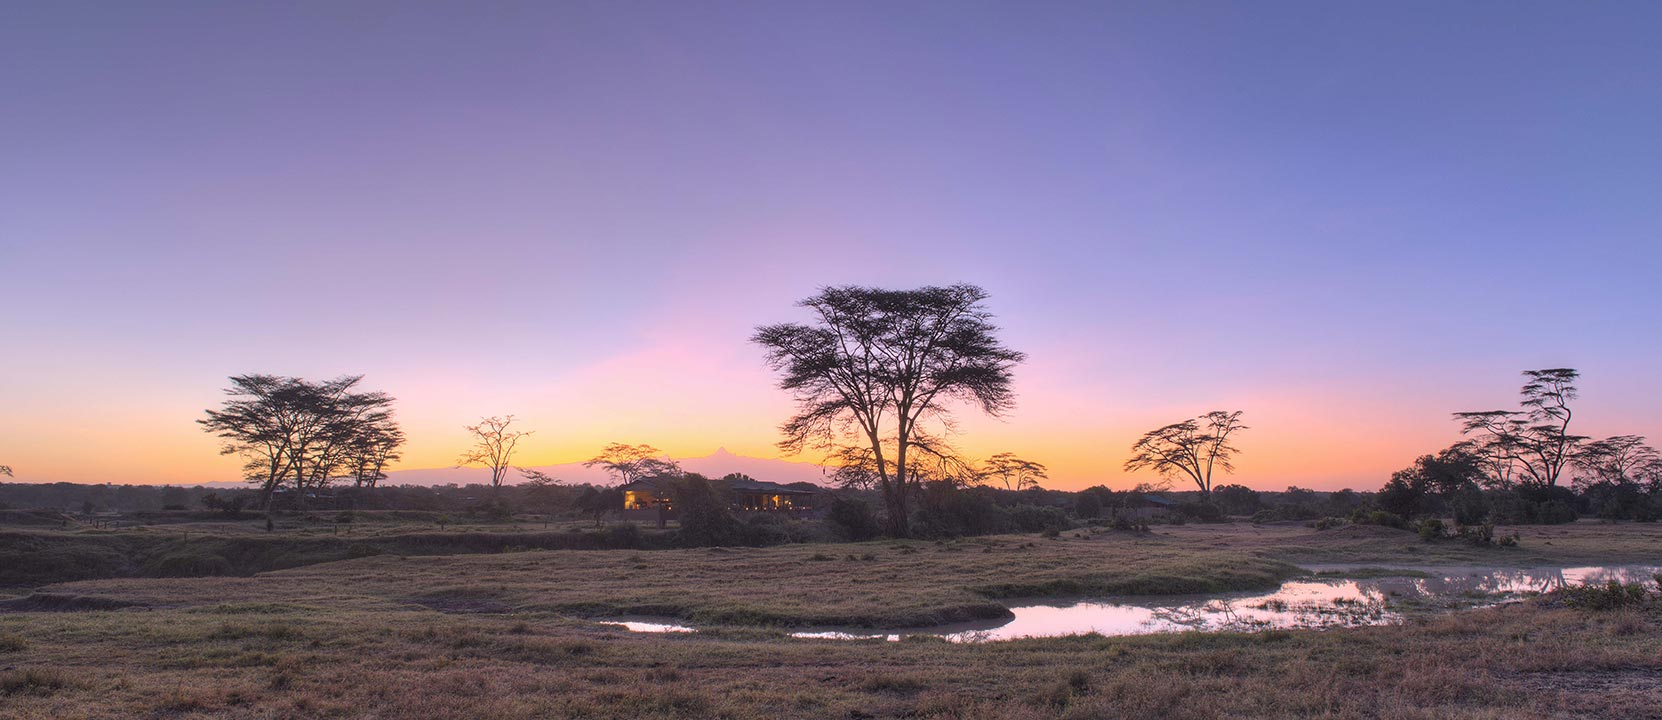 Ol-Pejeta-main-area-sunset-Mount-Kenya.jpg